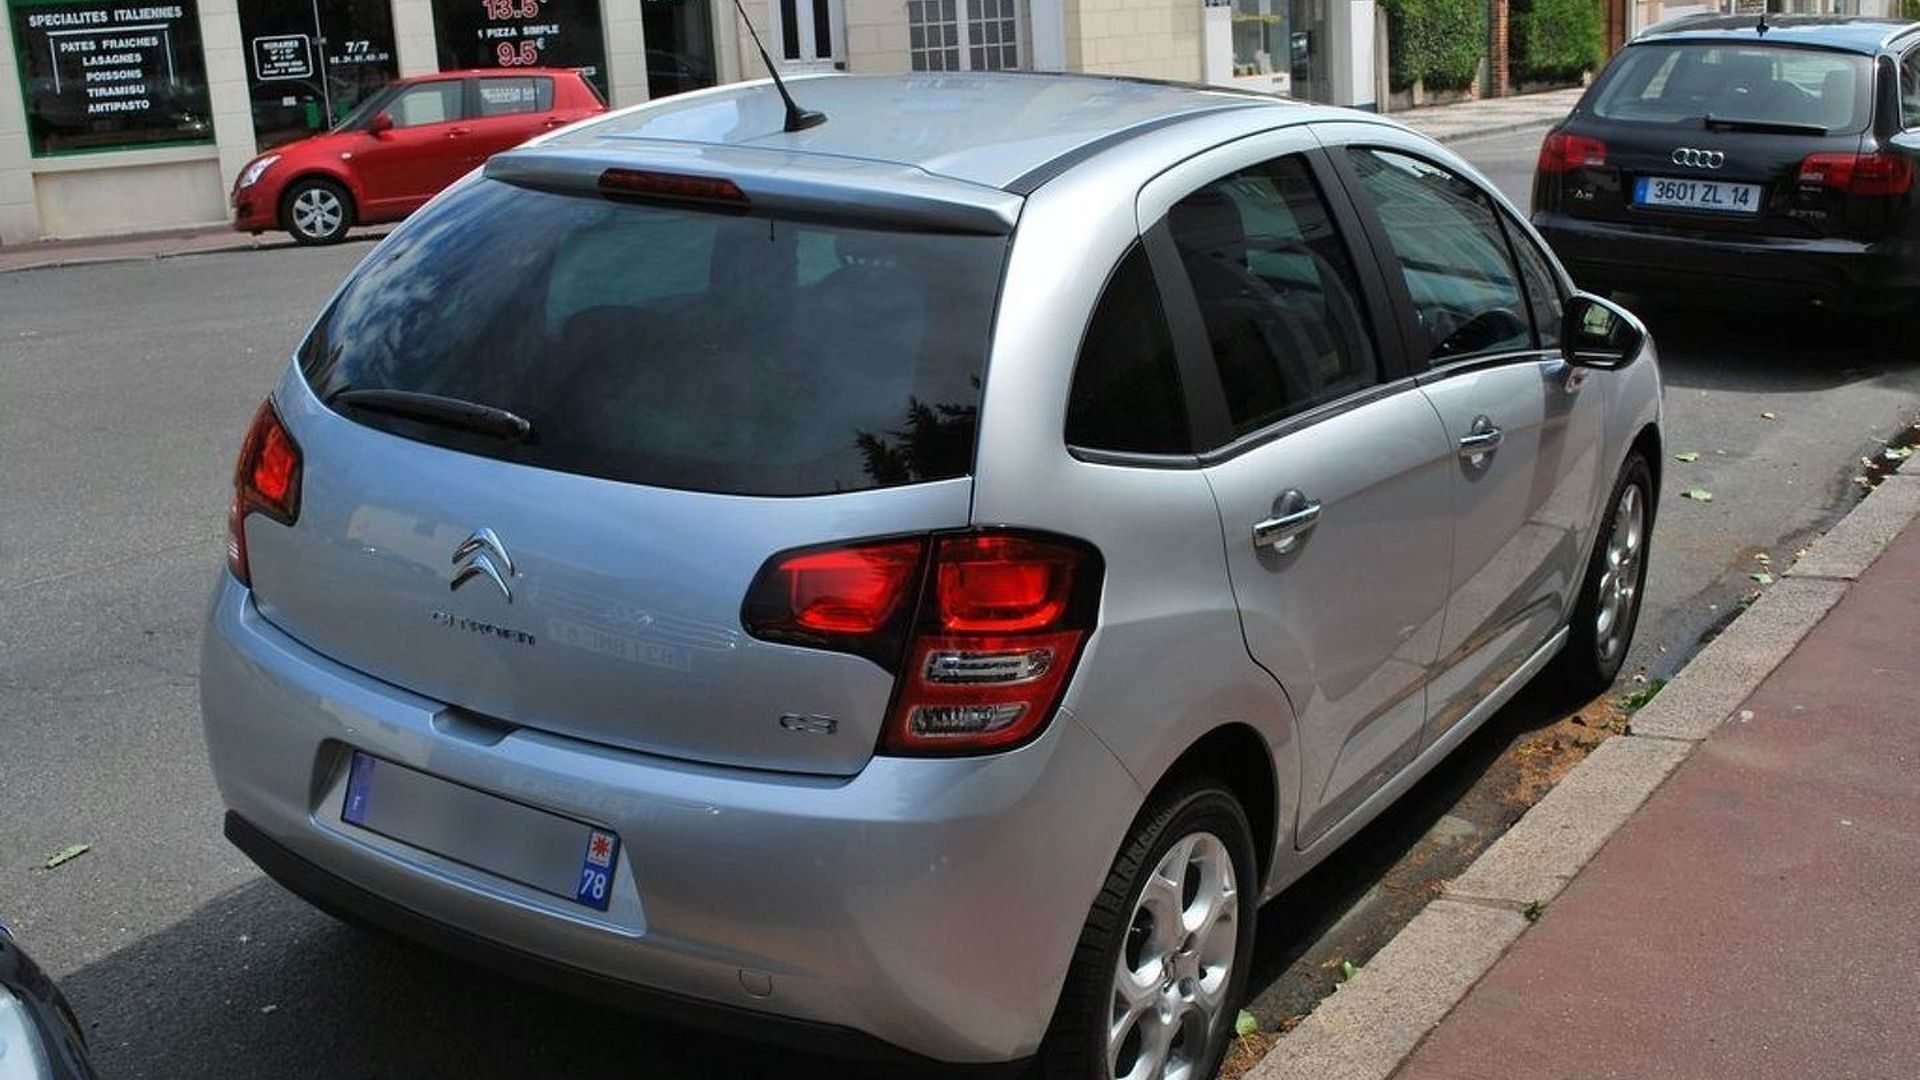 New Citroen C3 snapped on the street